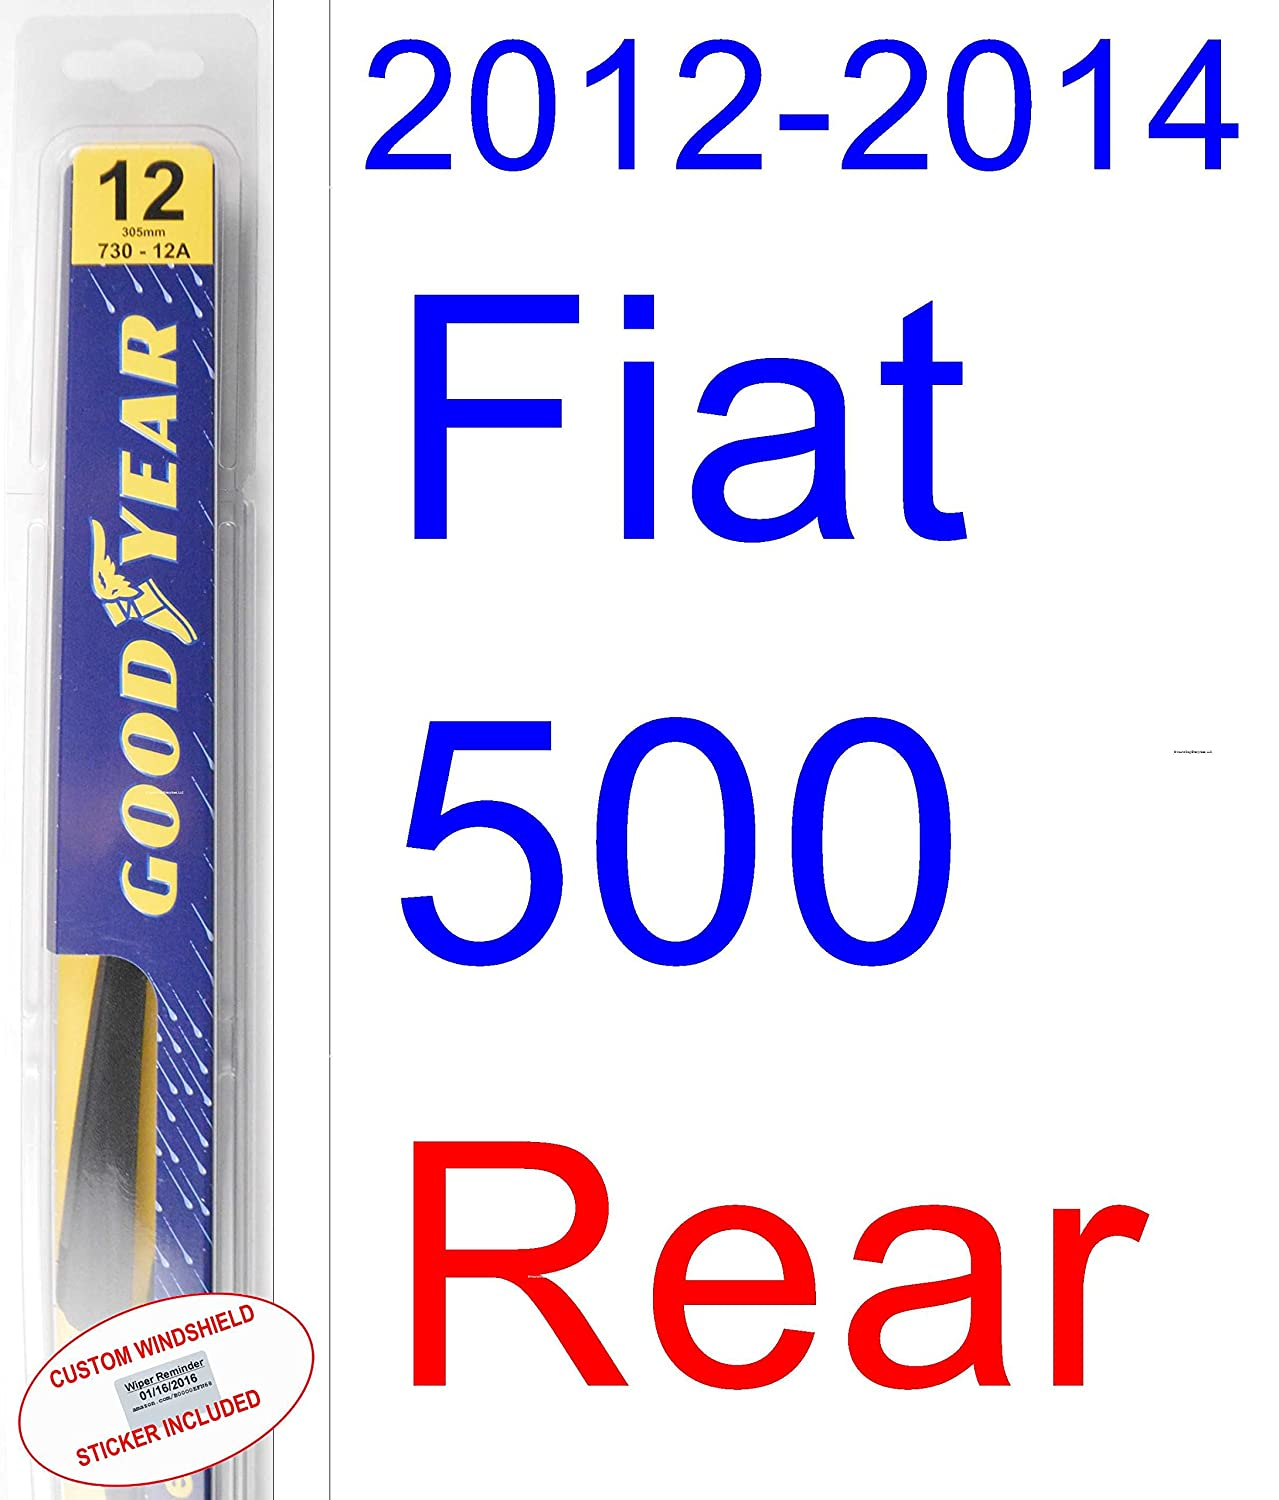 Amazon.com: 2012-2014 Fiat 500 Replacement Wiper Blade Set/Kit (Set of 2 Blades) (Goodyear Wiper Blades-Premium) (2013): Automotive